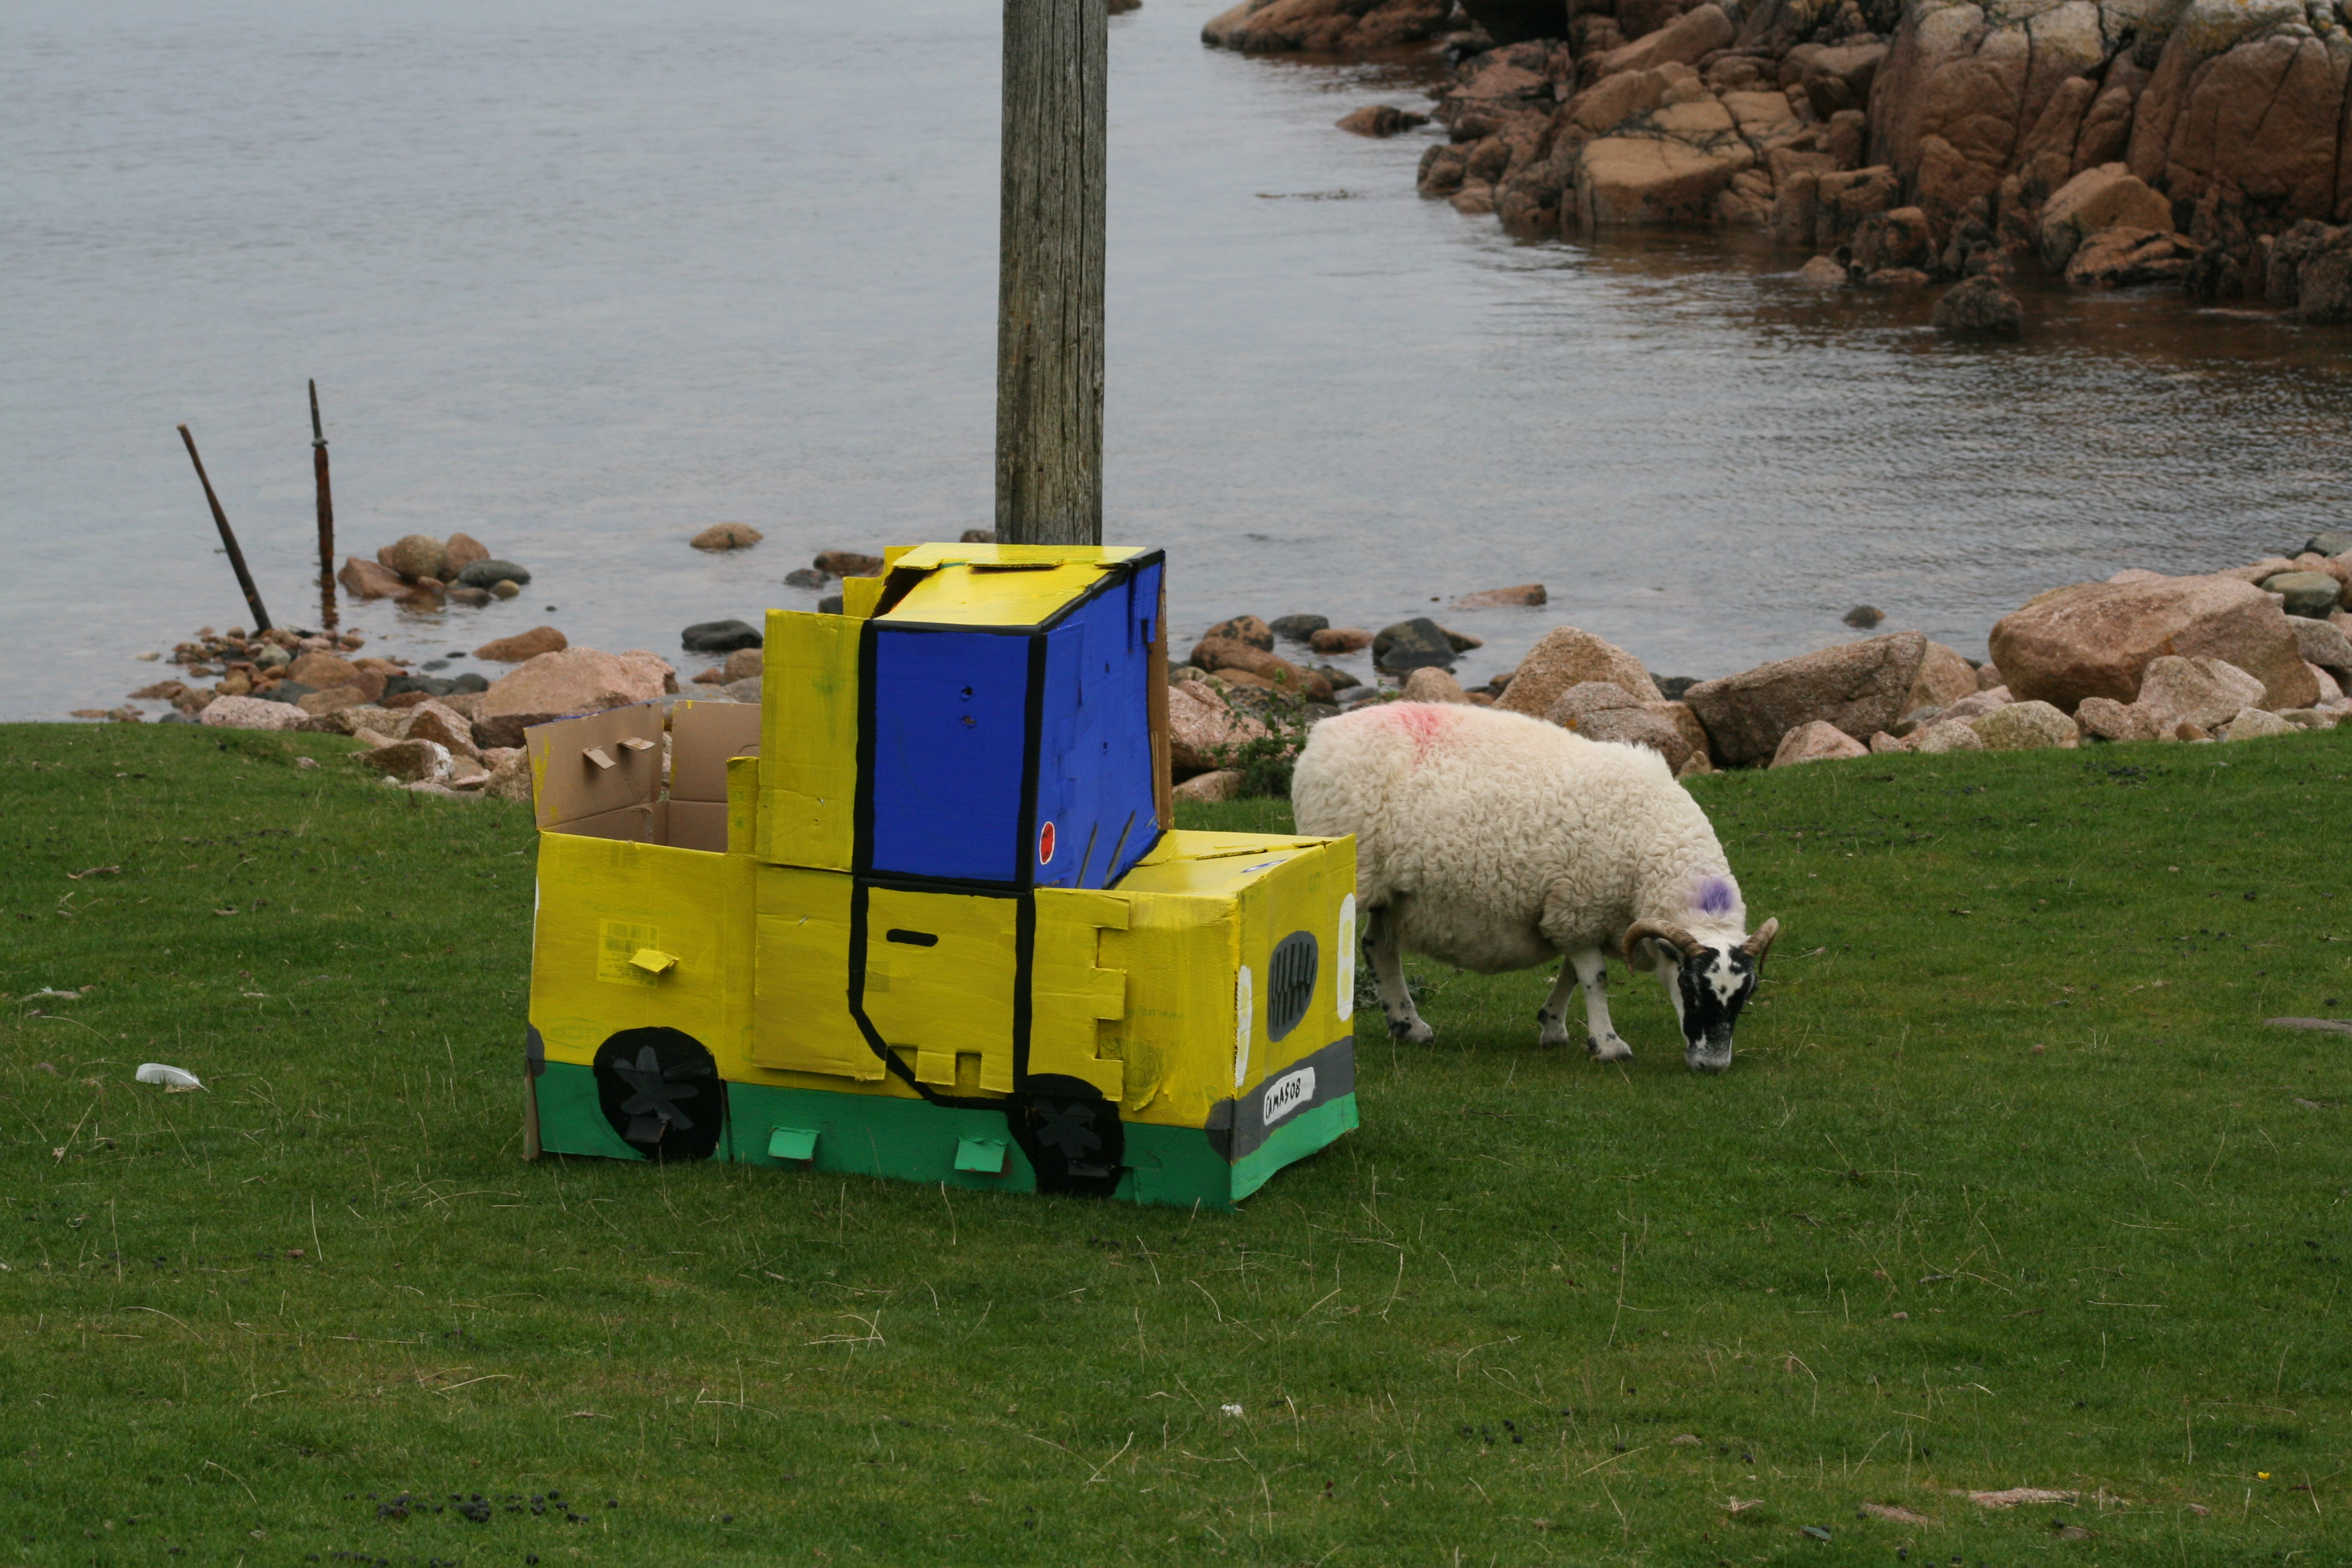 Ferocious patiently waits on the front lawn so the sheep will get used to him.